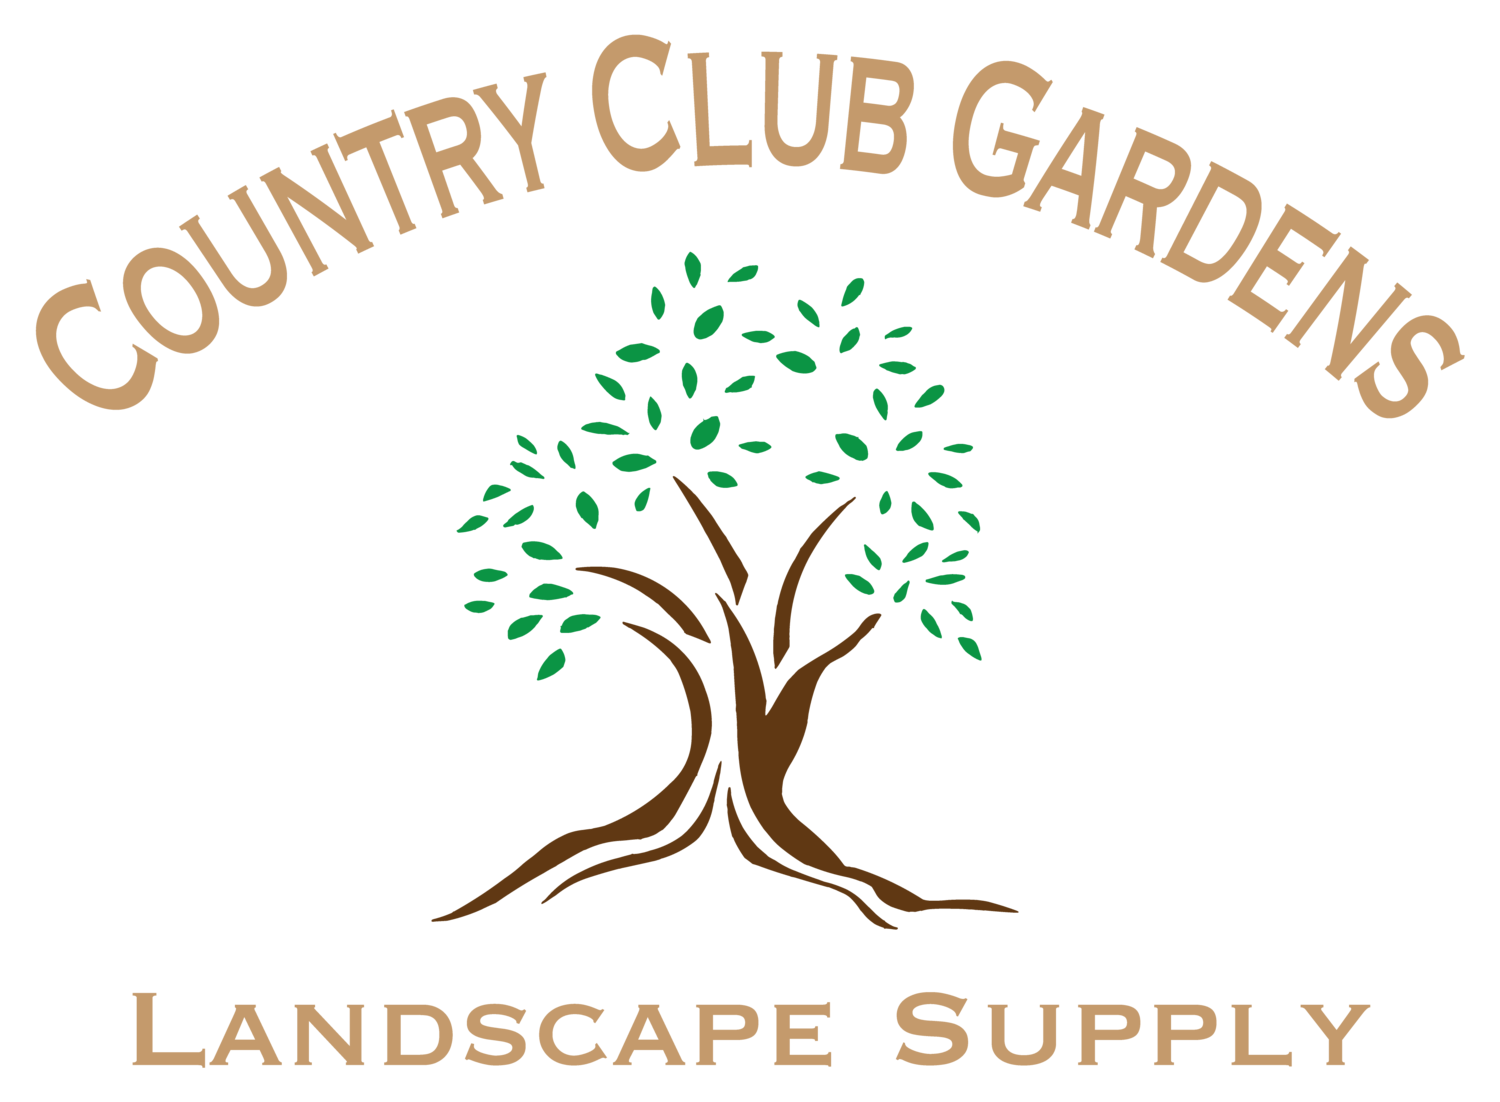 Country Club Gardens Landscaping